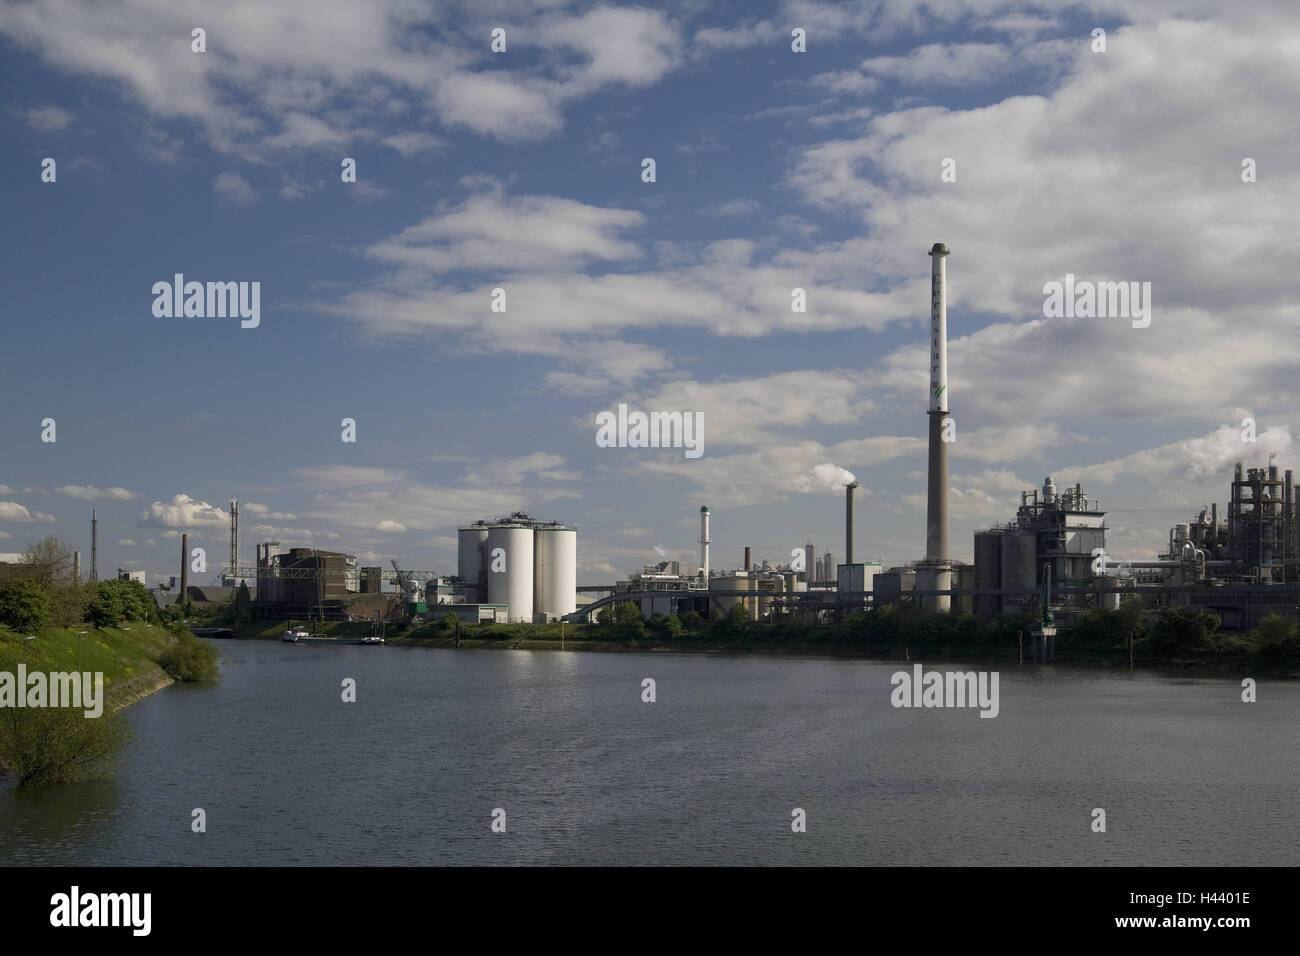 Germany, North Rhine-Westphalia, Krefeld, Uerdingen, Rhine harbour, industrial plant, refinery, river, the Rhine, Stock Photo